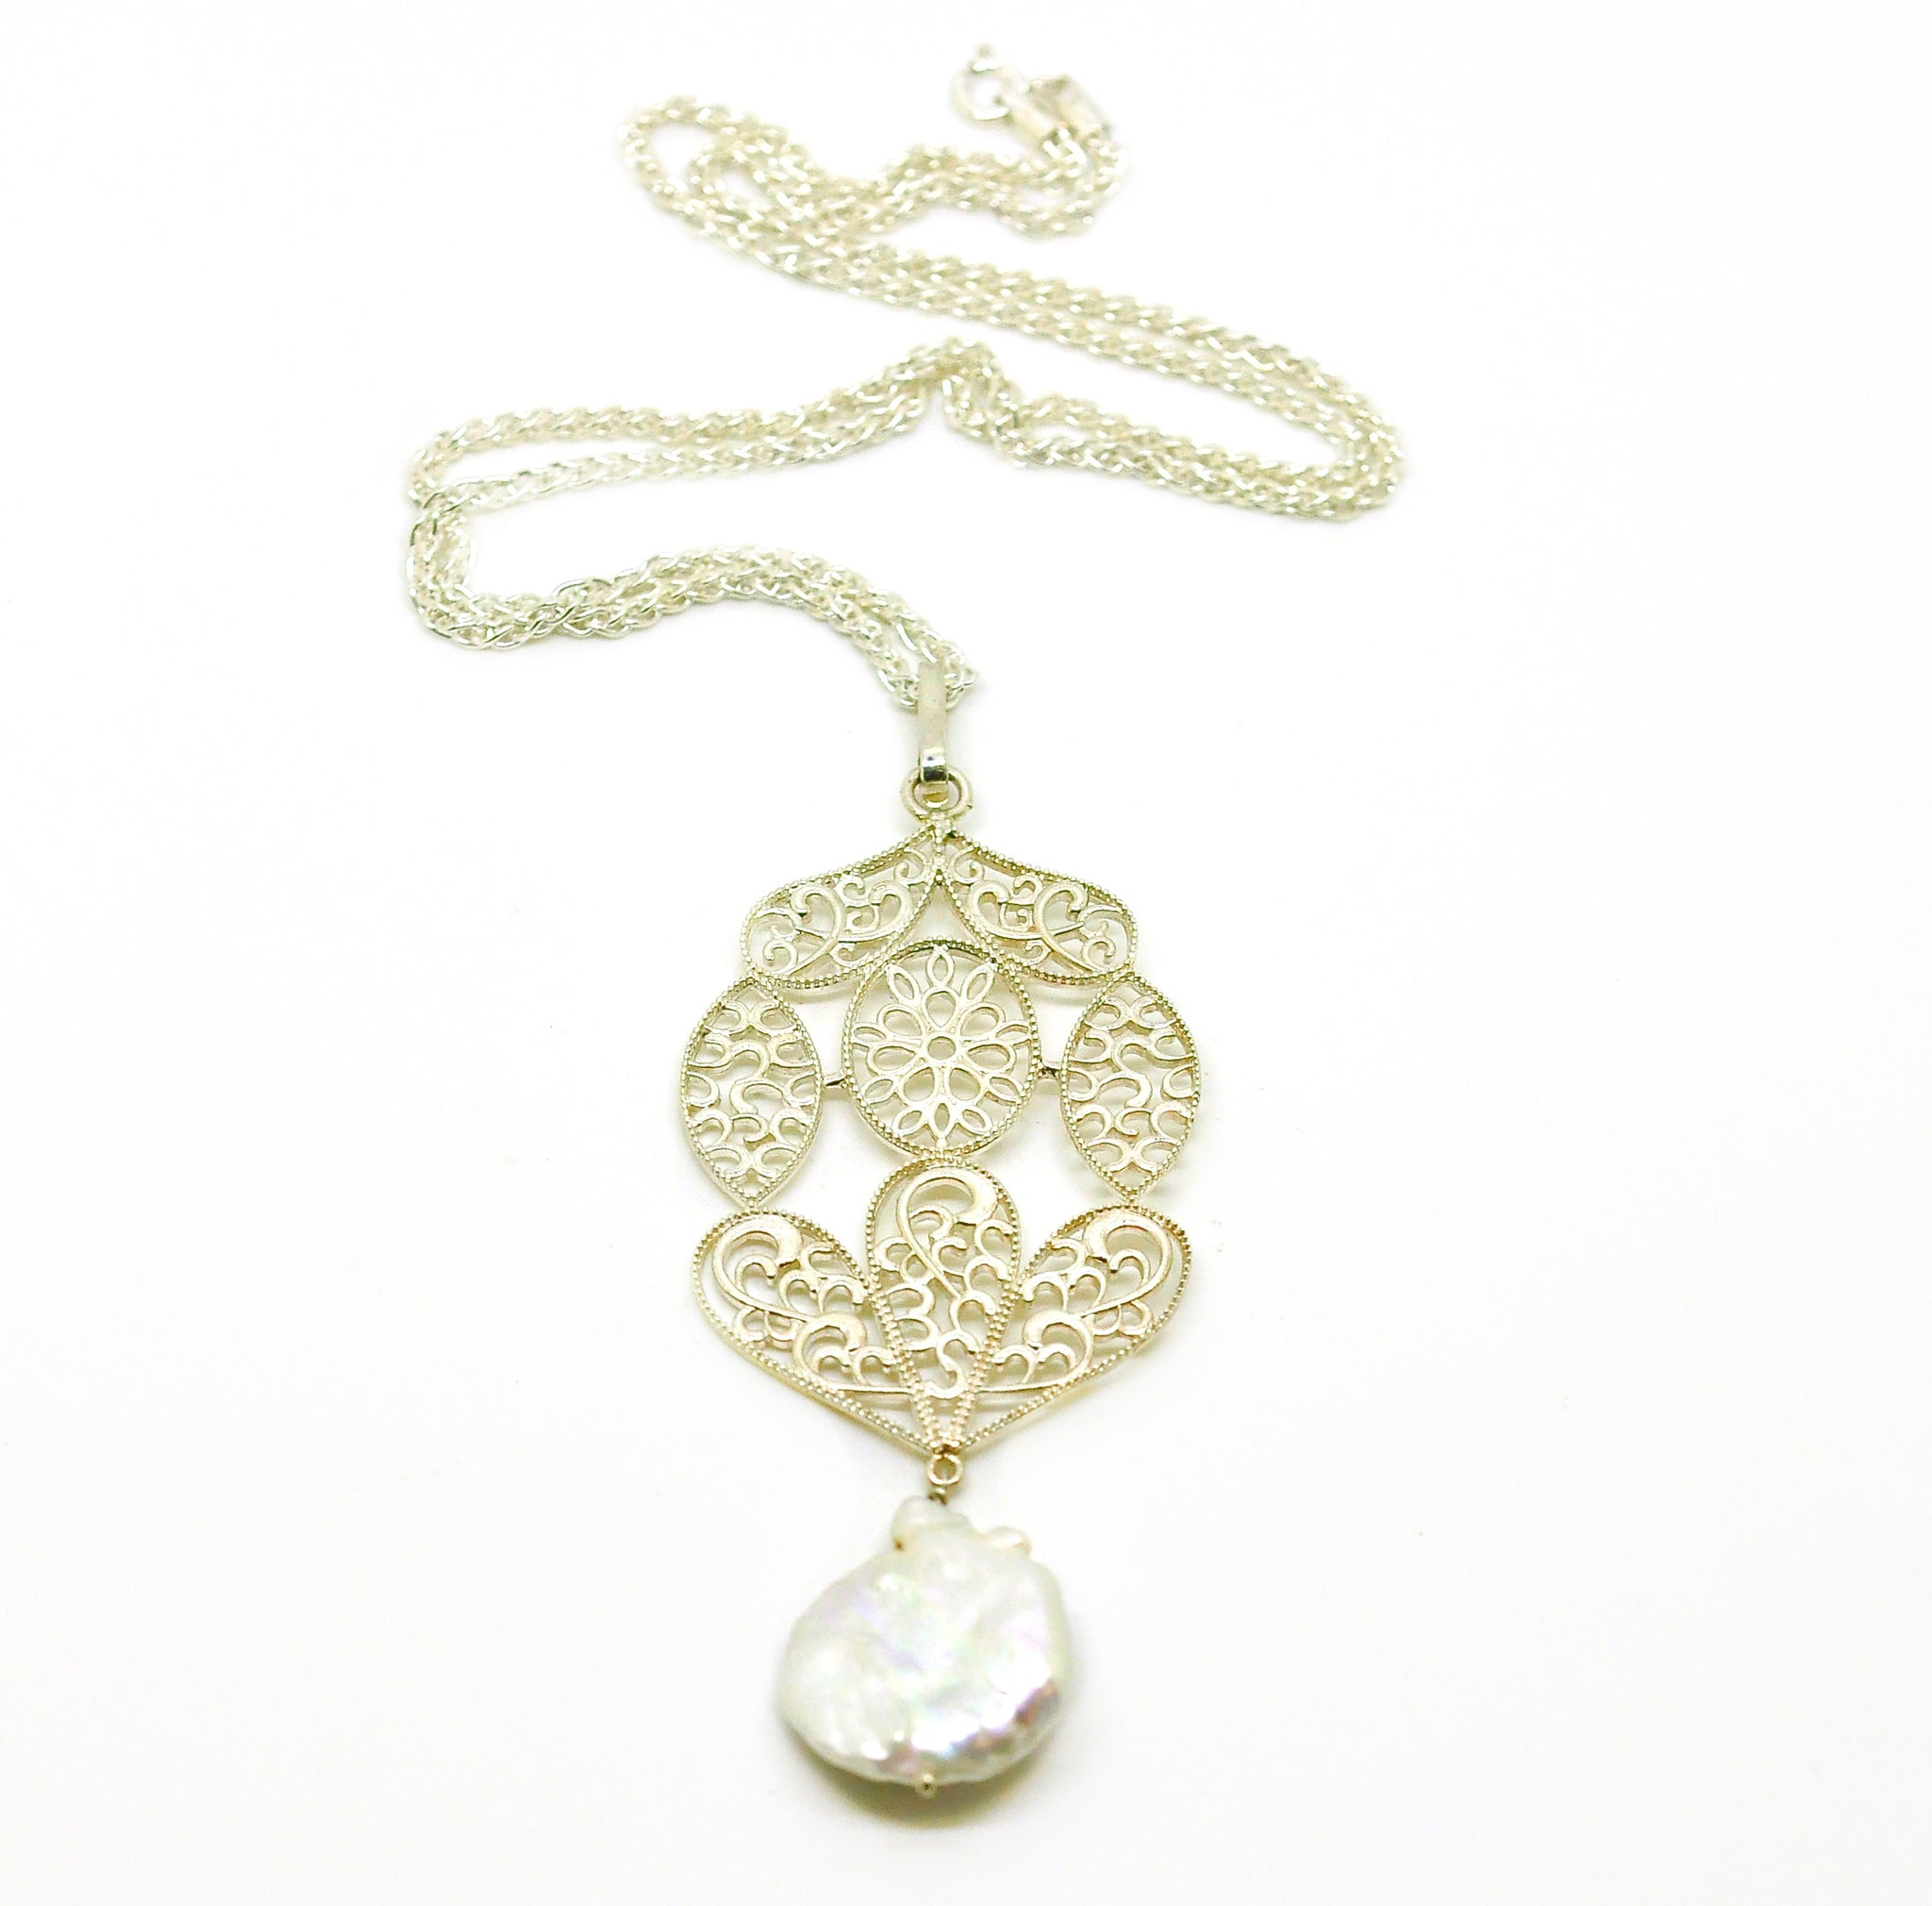 NEW Baroque pearl filigree pendant